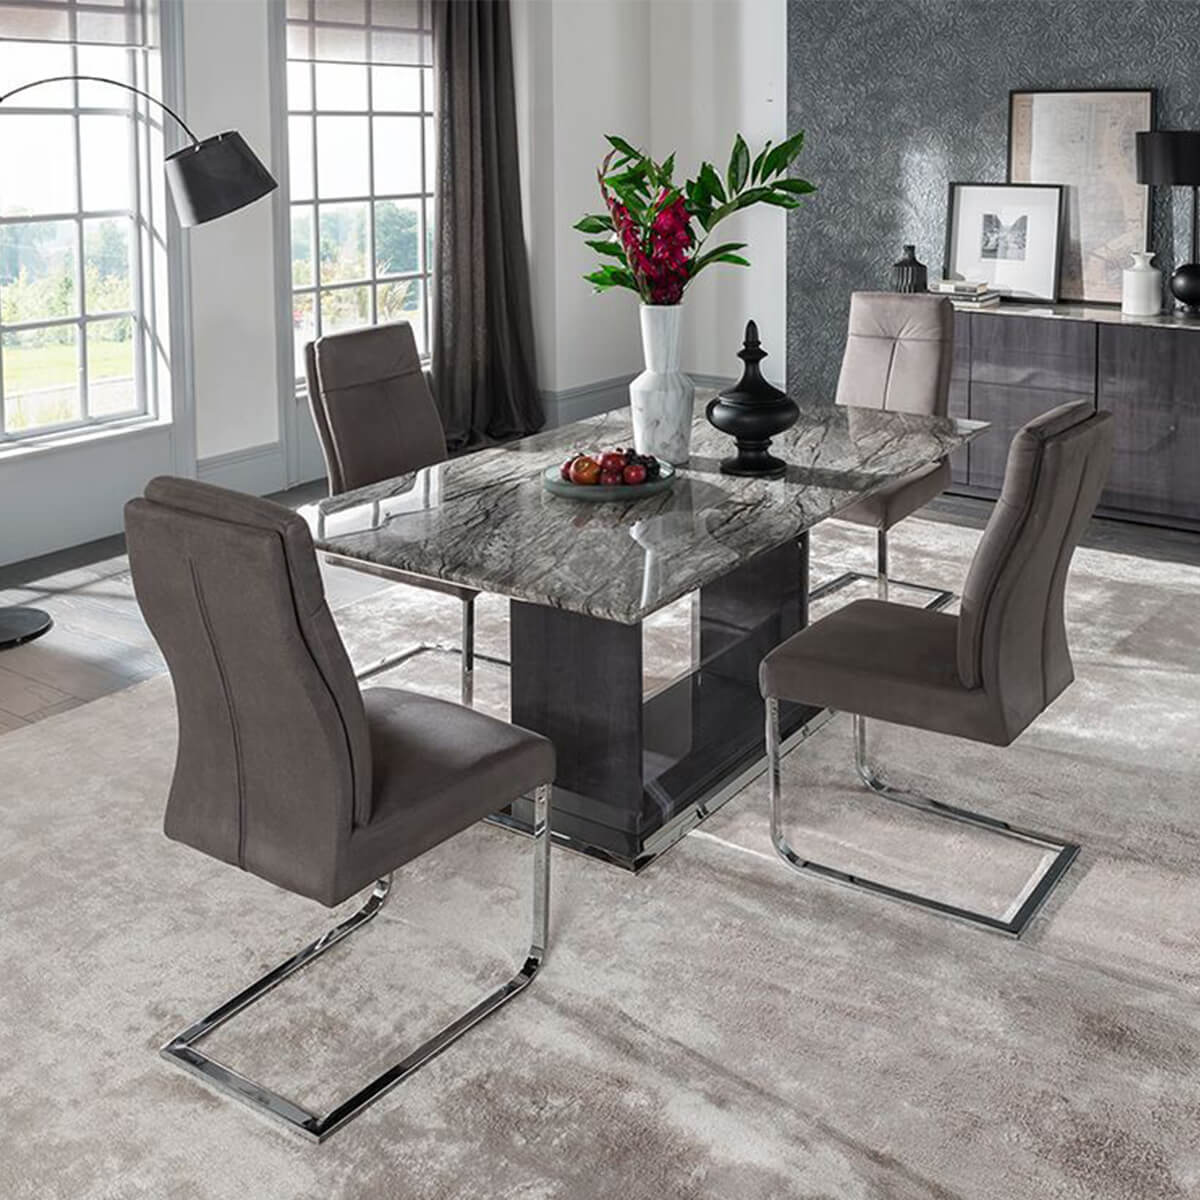 grey living room set window valances for rooms rina marble dining table modern fads 4 to 8 seater